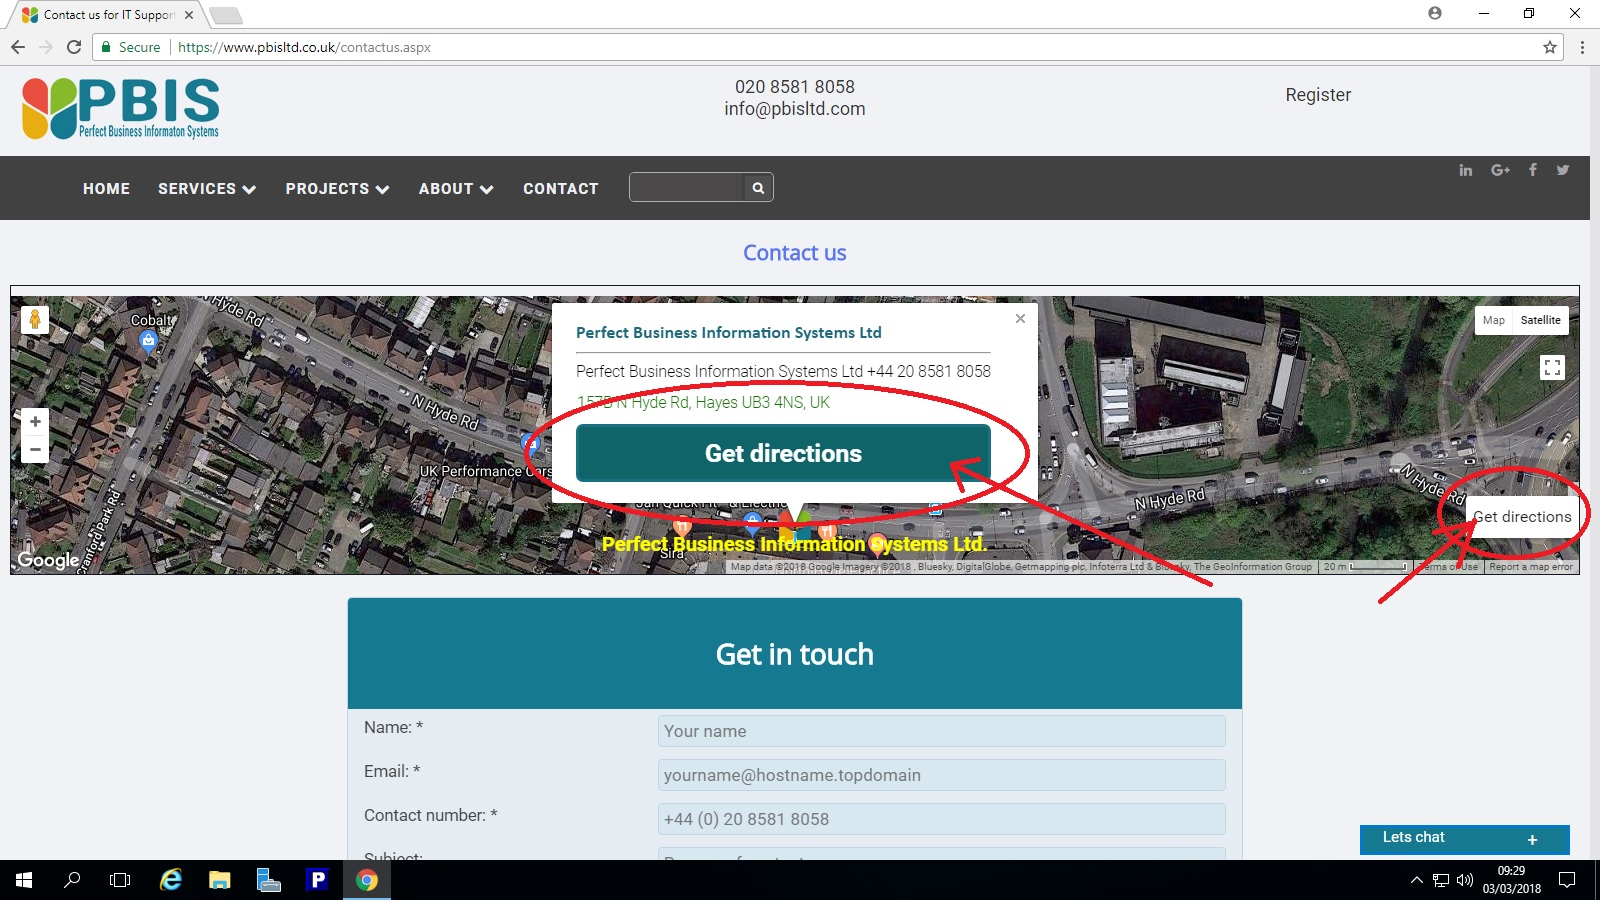 An image showing enhancemants on contact us form for visitor's navigation